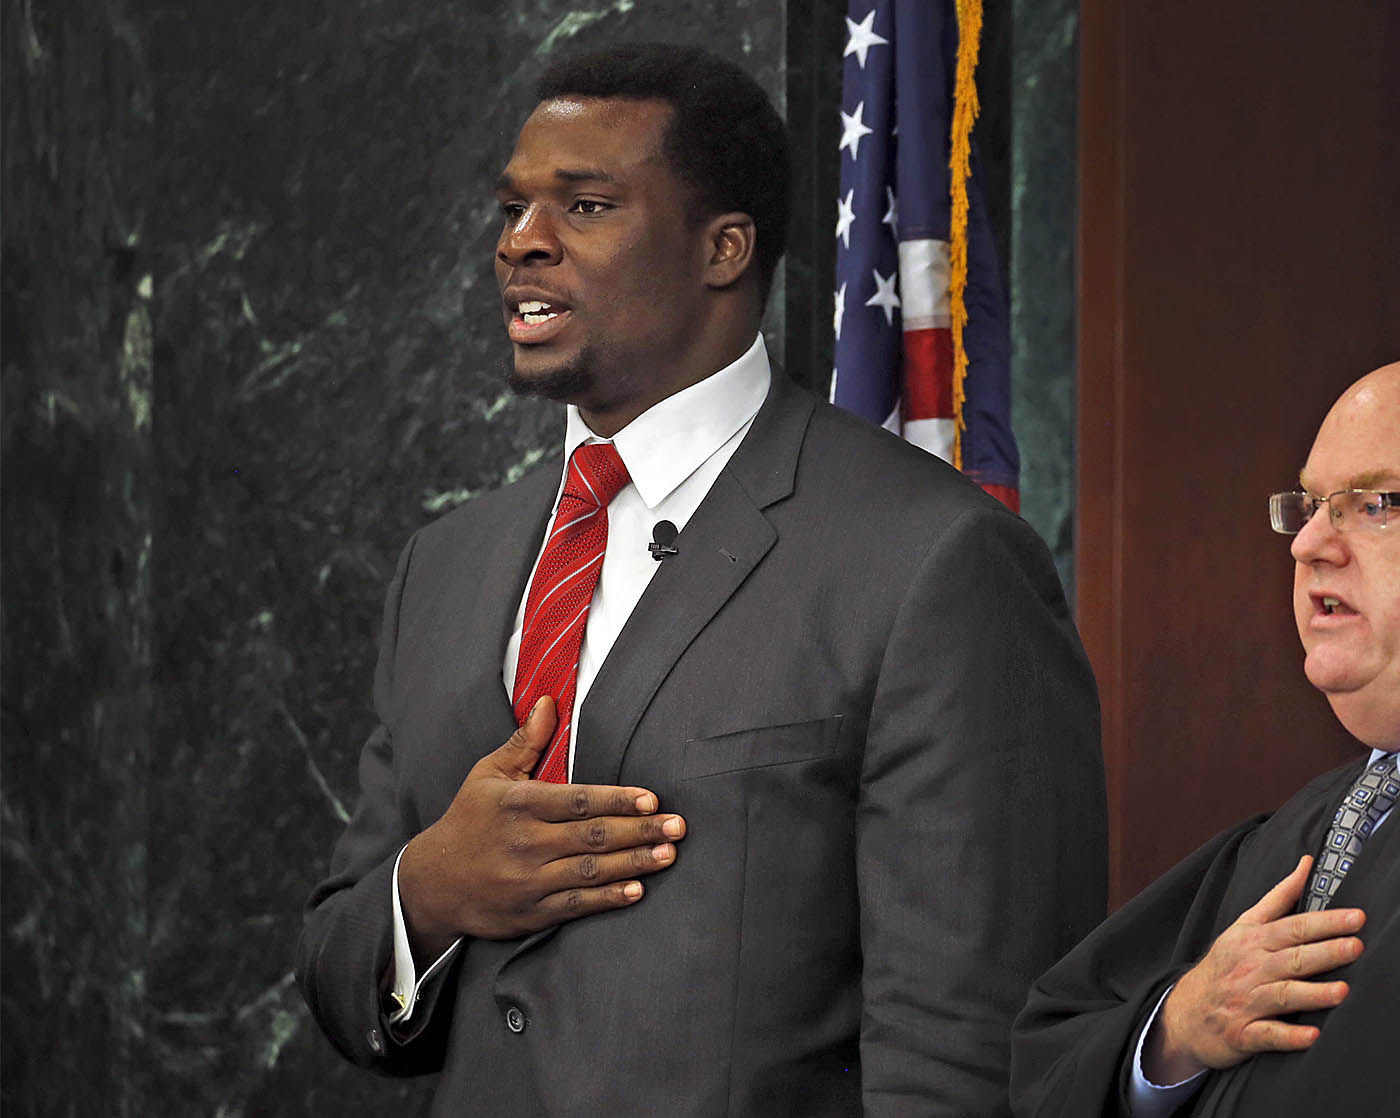 Cyrus Kouandijo, left, a Buffalo Bills lineman and a native of Cameron, Africa, leads the Pledge of Allegiance, with Judge Michael J. Roemer during a naturalization ceremony at the courthouse in Buffalo on Thursday, Nov. 17, 2016. (Robert Kirkham/Buffalo News)